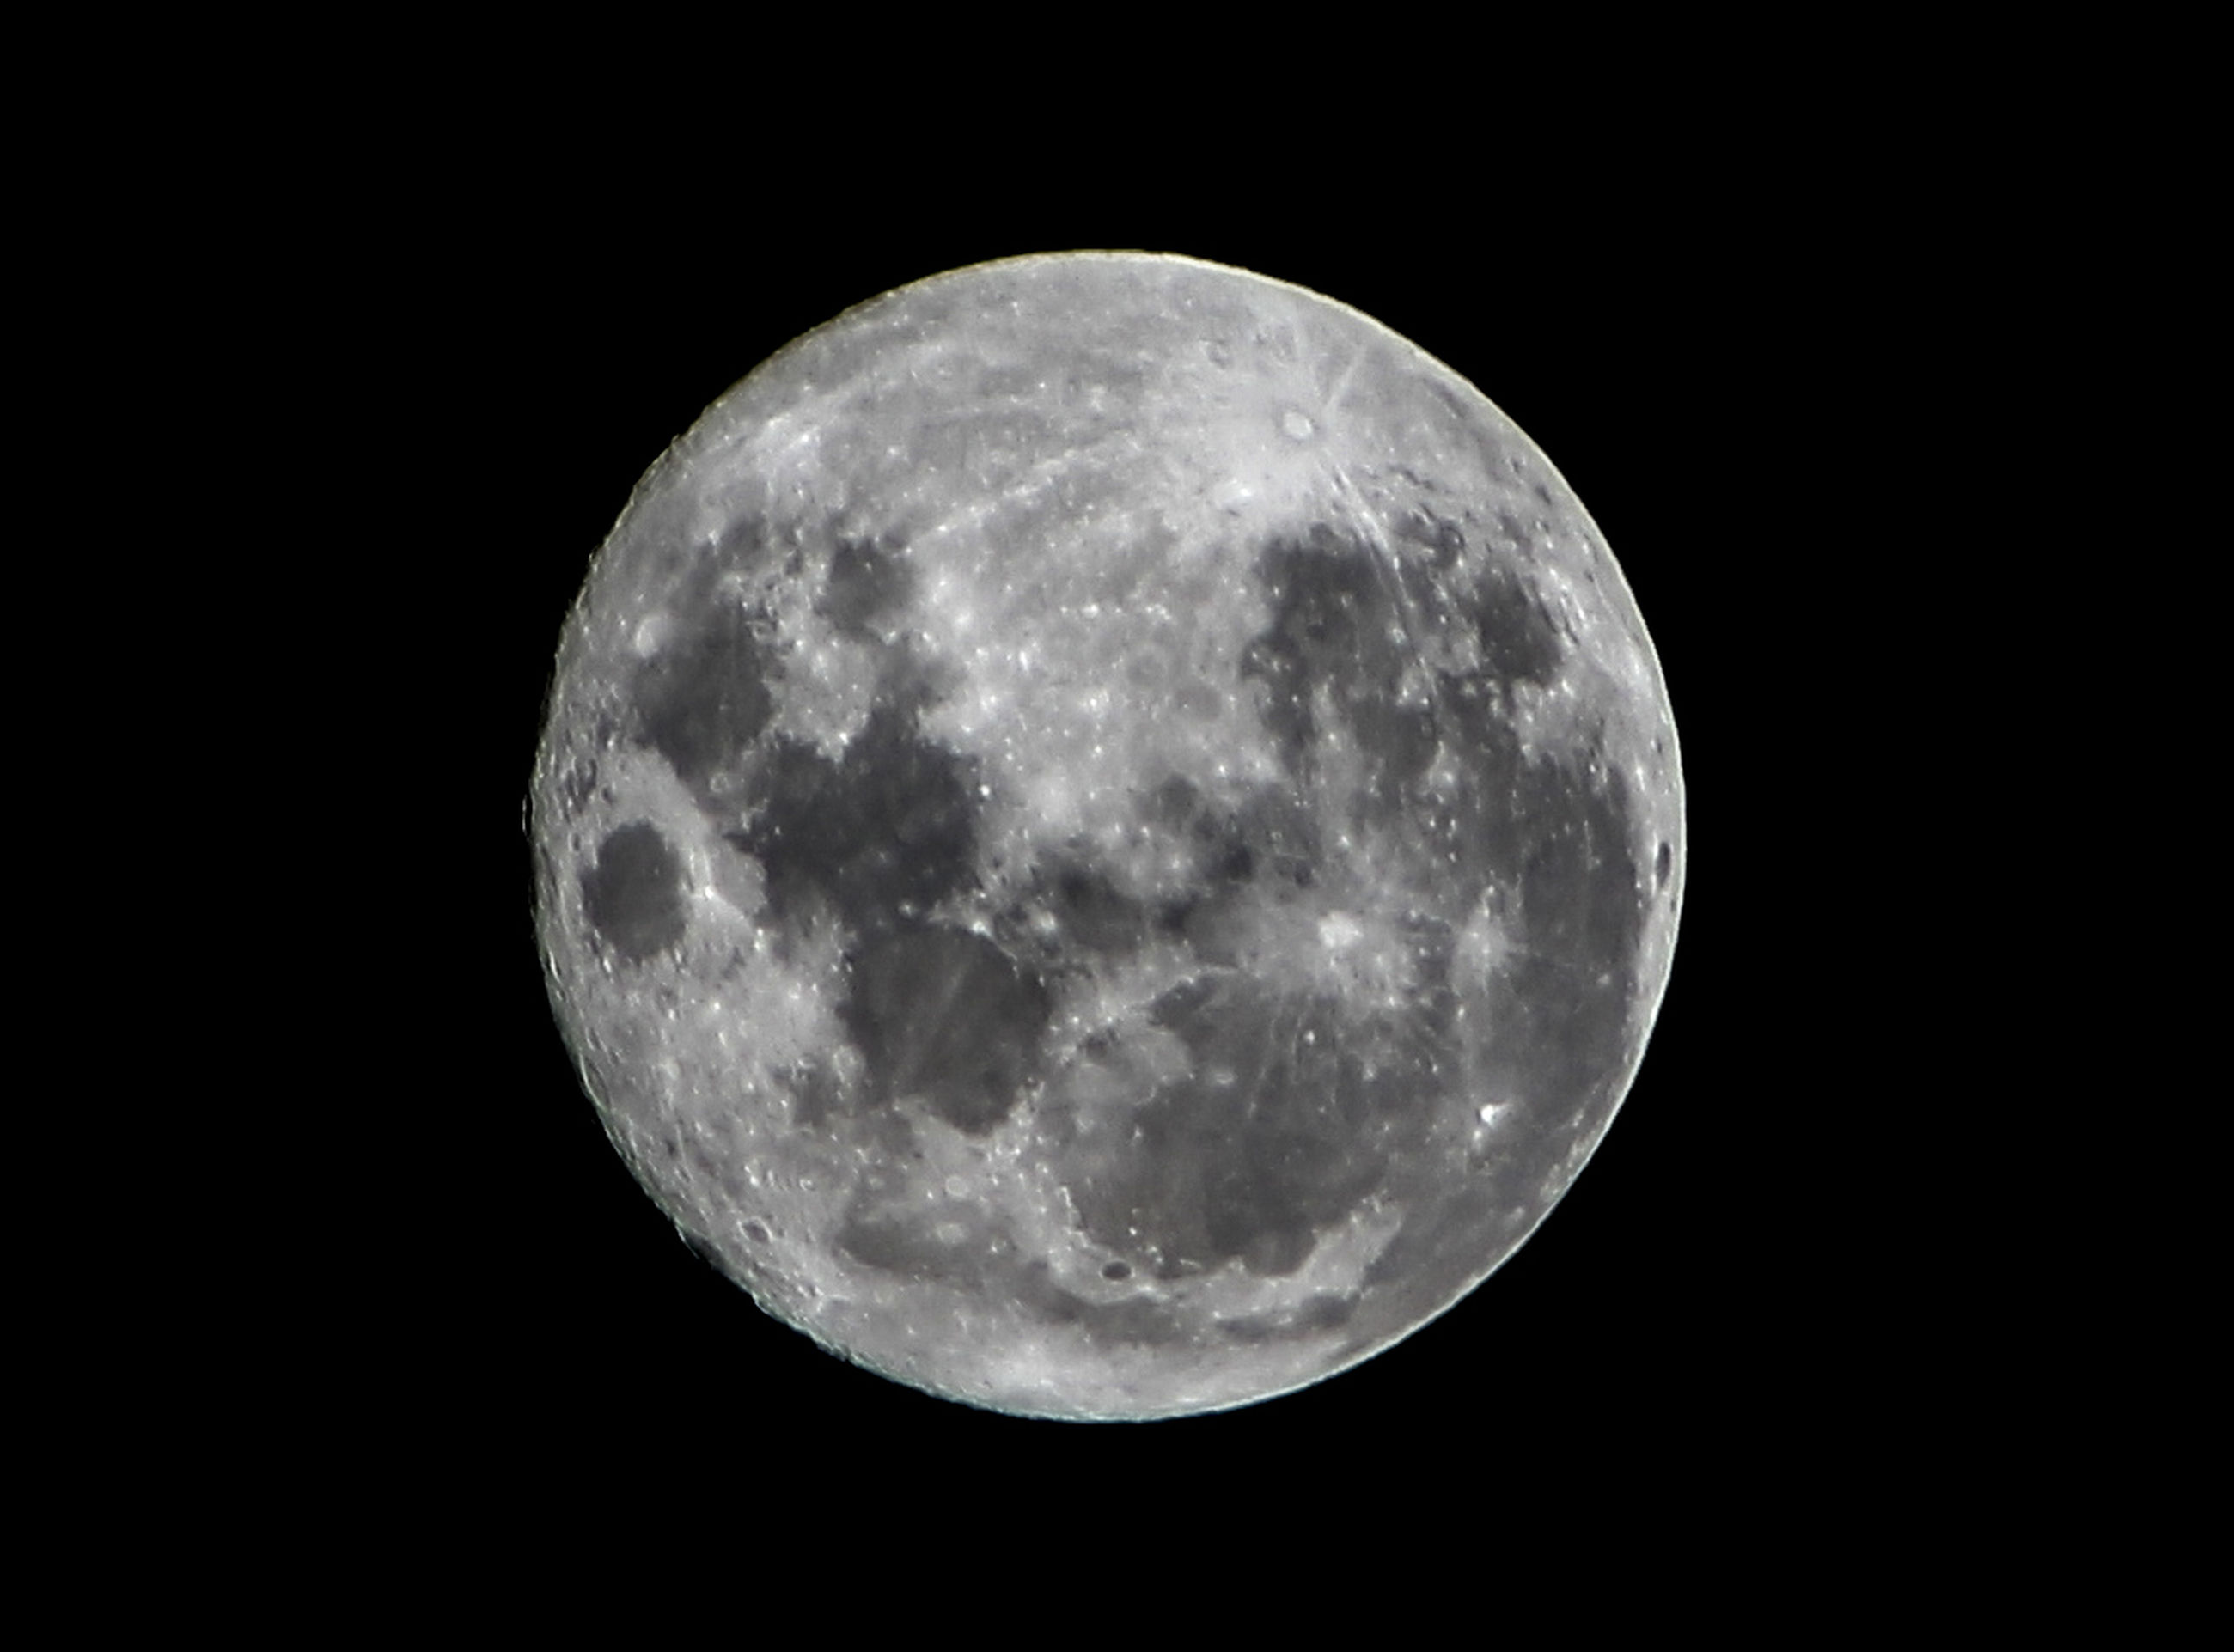 moon, astronomy, planetary moon, full moon, moon surface, night, discovery, sphere, space exploration, circle, beauty in nature, tranquil scene, scenics, tranquility, nature, exploration, low angle view, sky, majestic, space